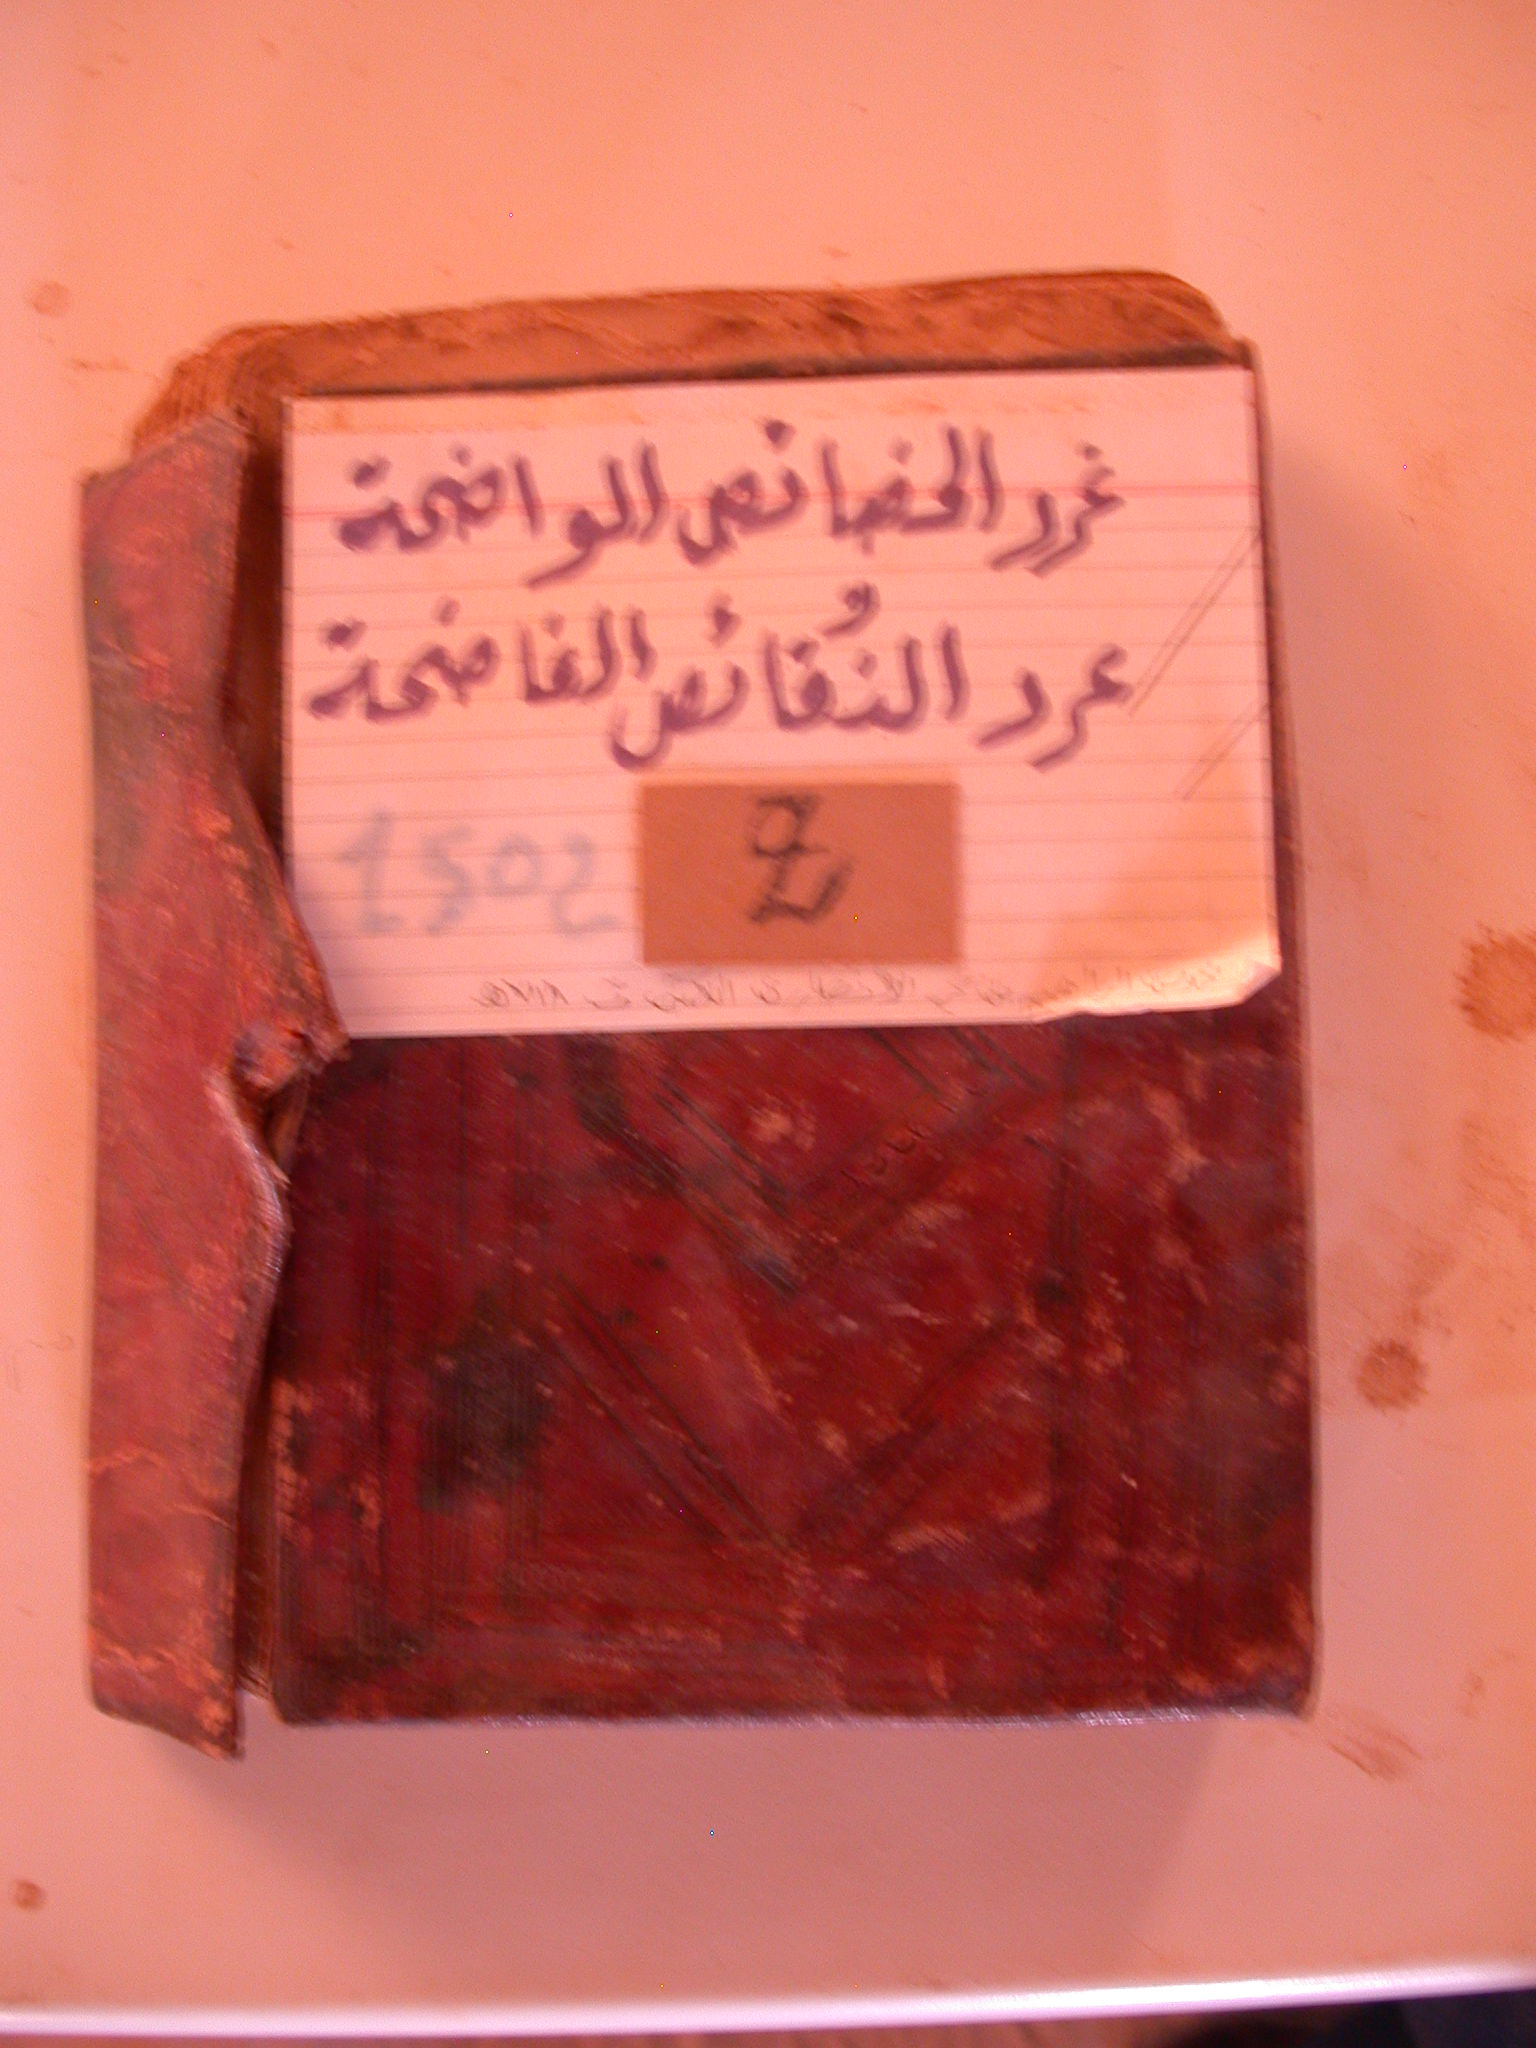 Label on Book Repository at Library in Ancient City of Oulata, Mauritania